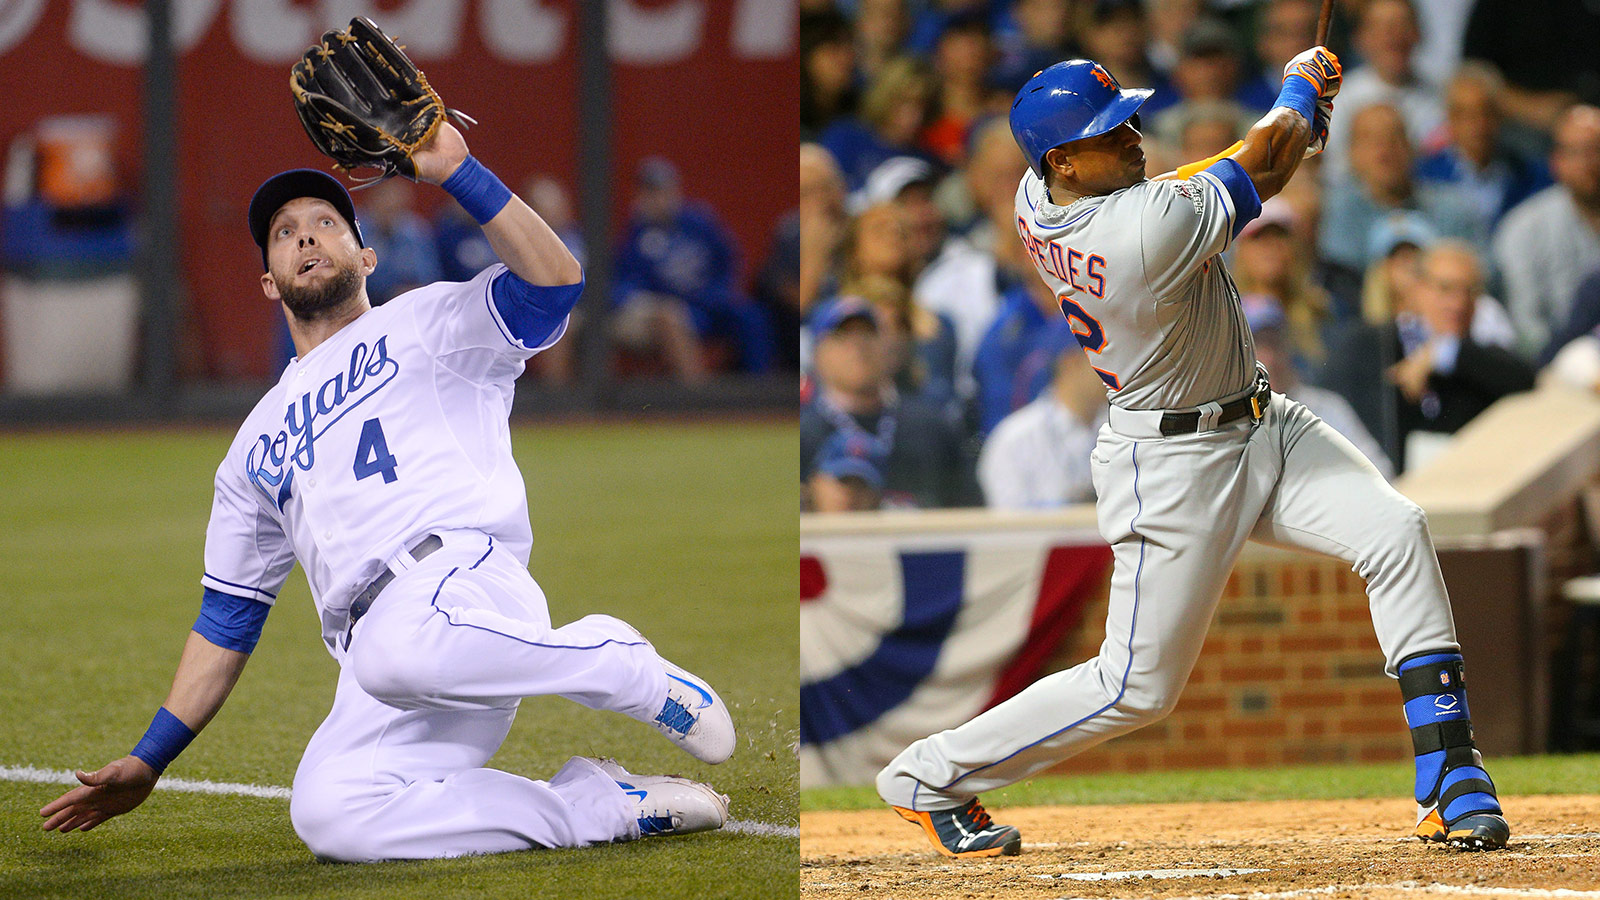 How the Royals and Mets match up position by position